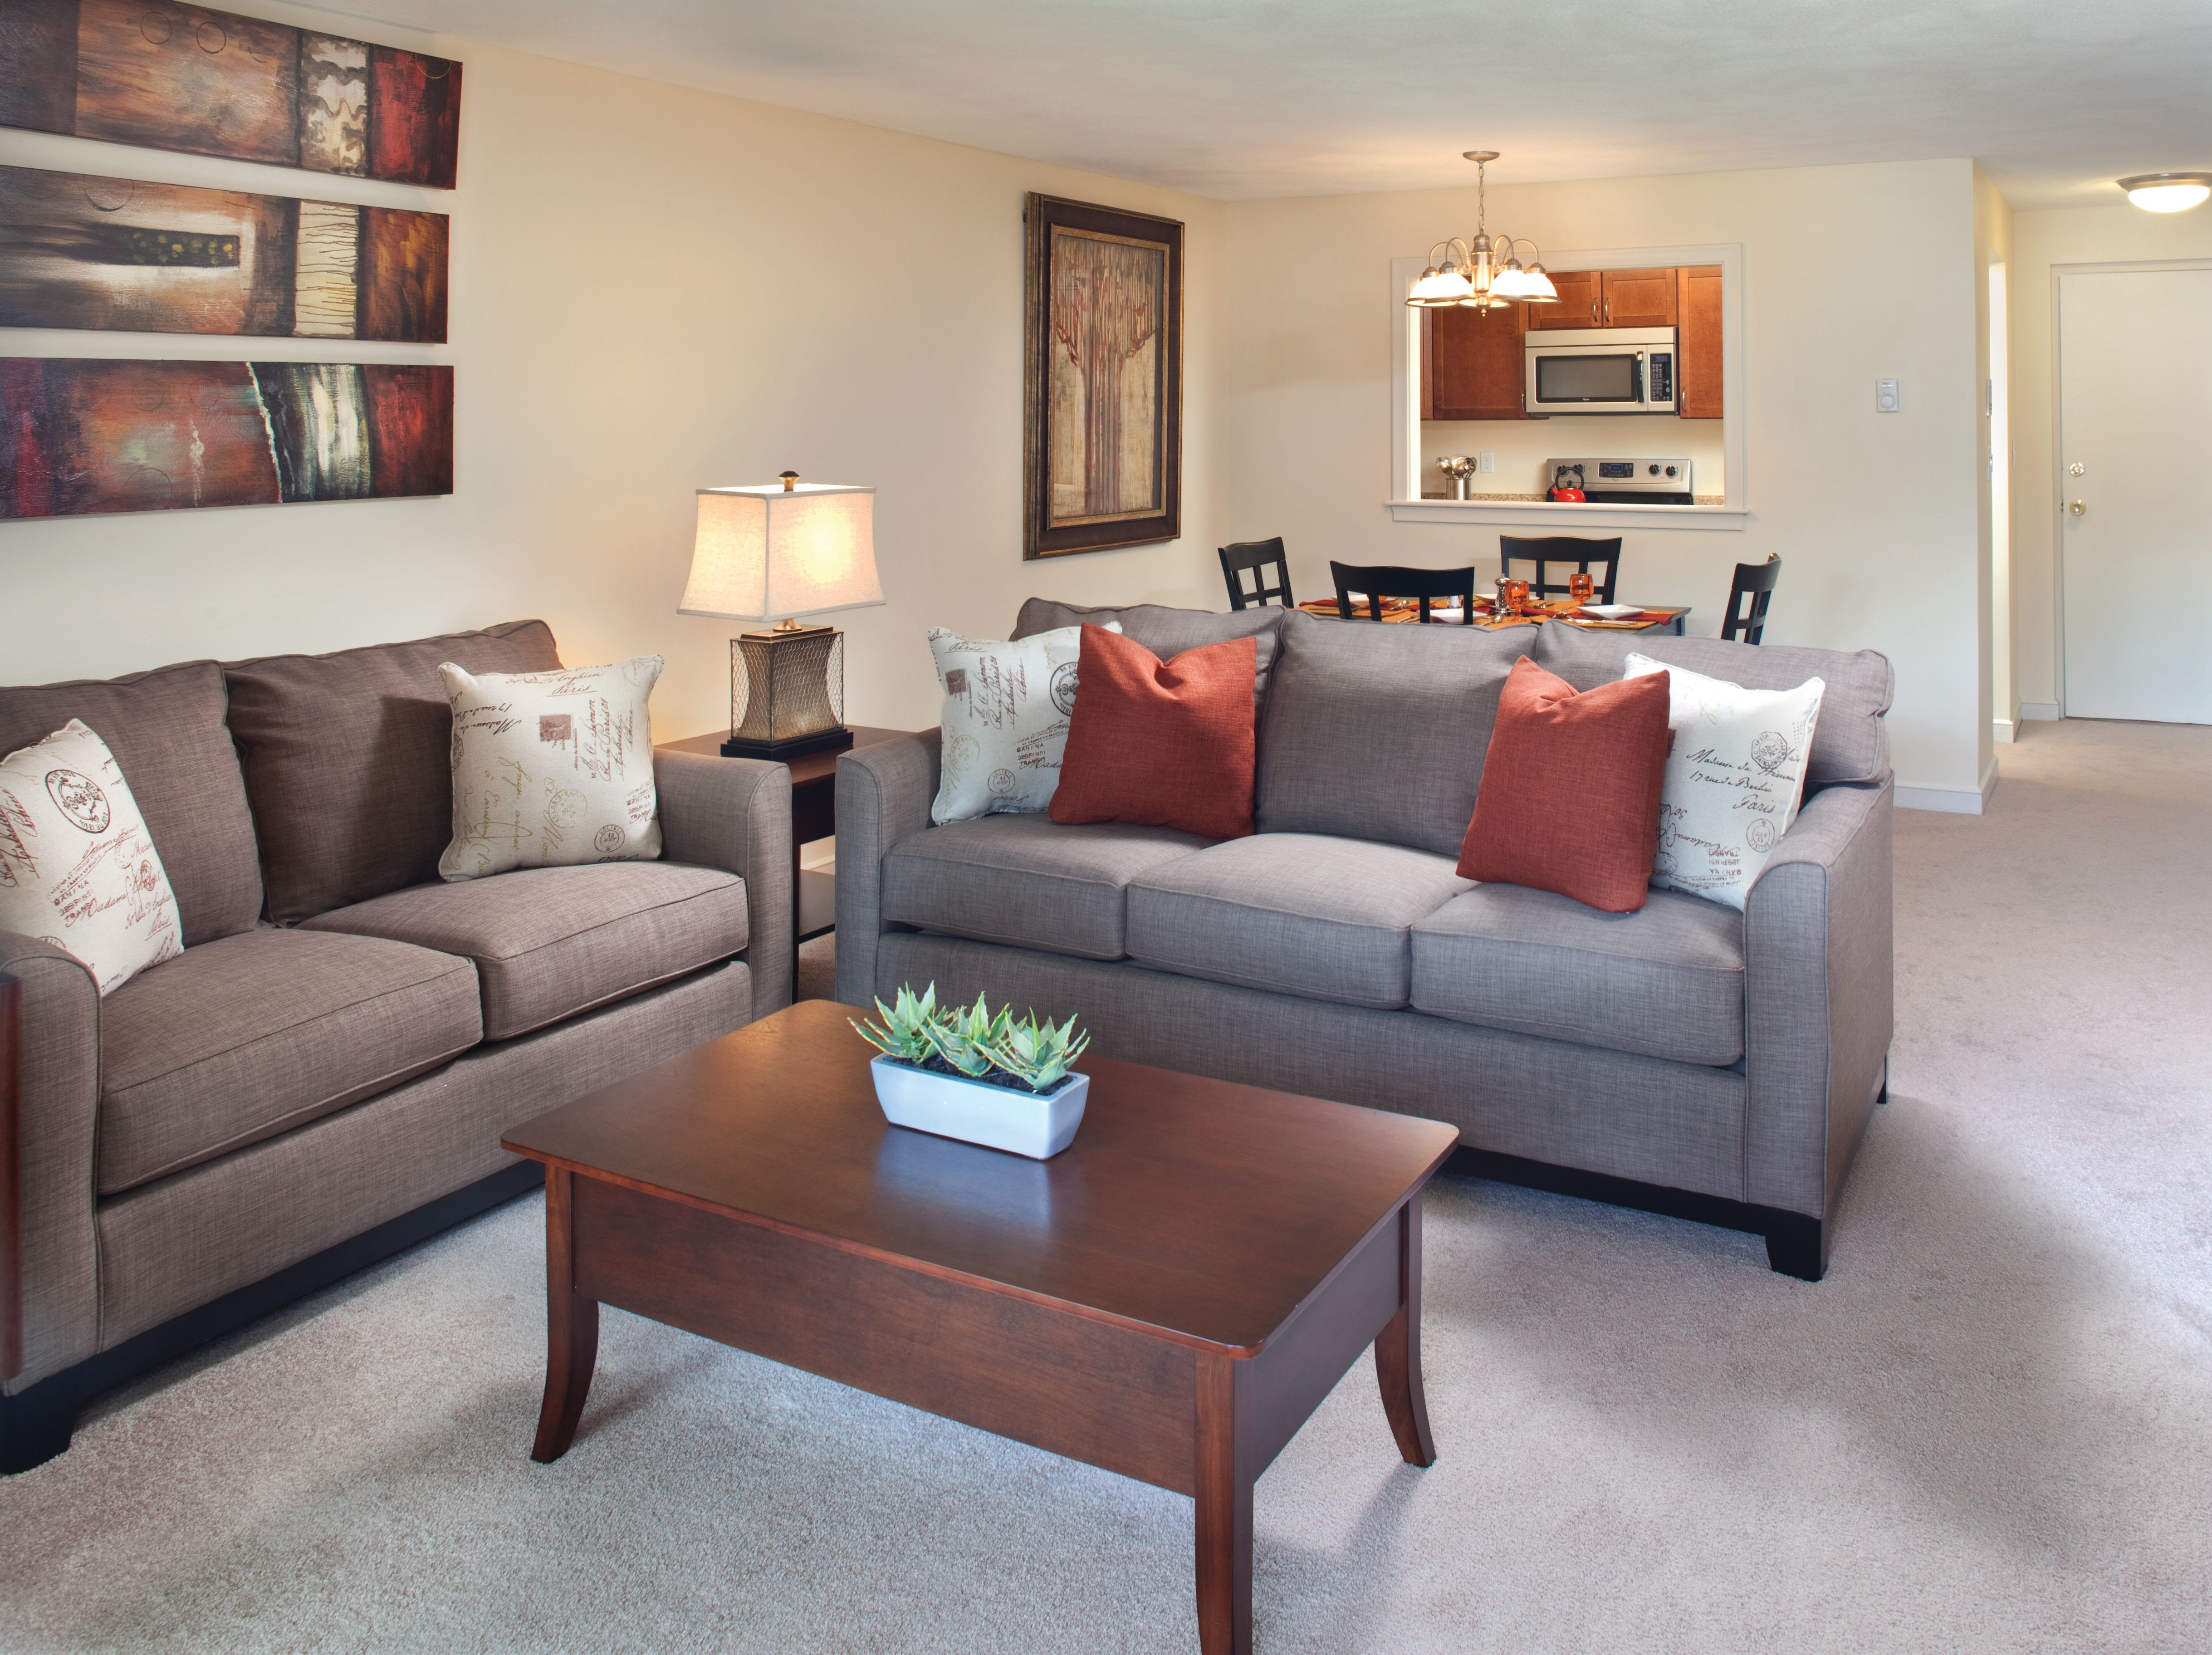 living room In an apartment at Gardencrest in Waltham, Massachusetts